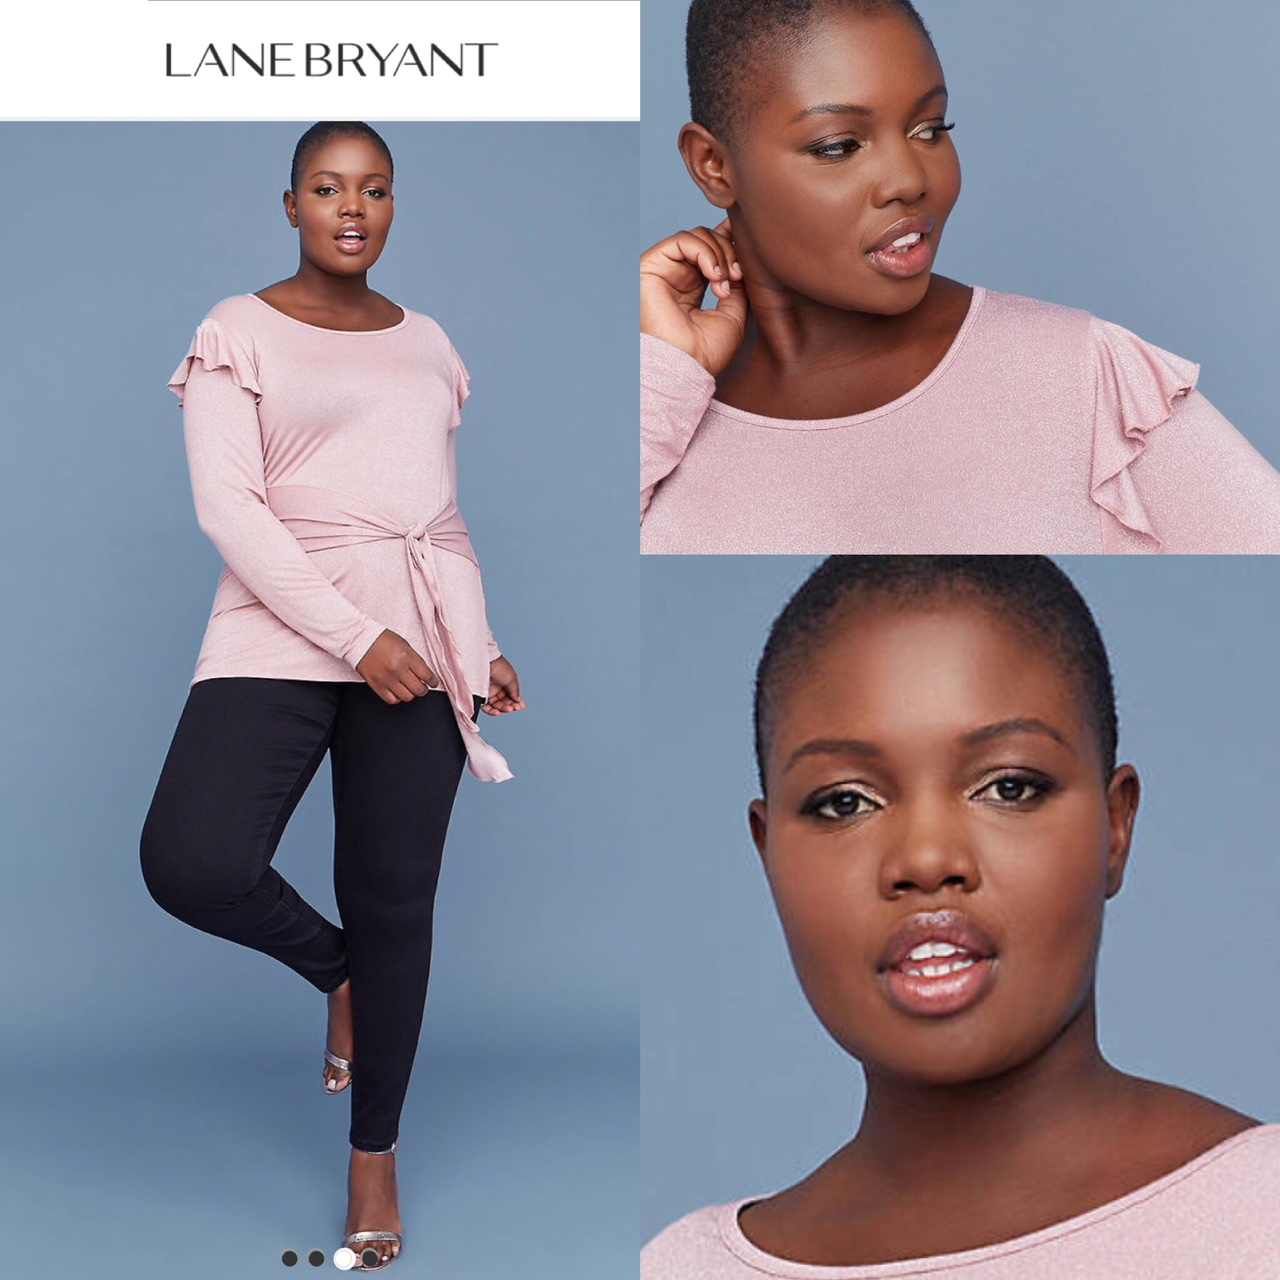 Makeup for Lane Bryant